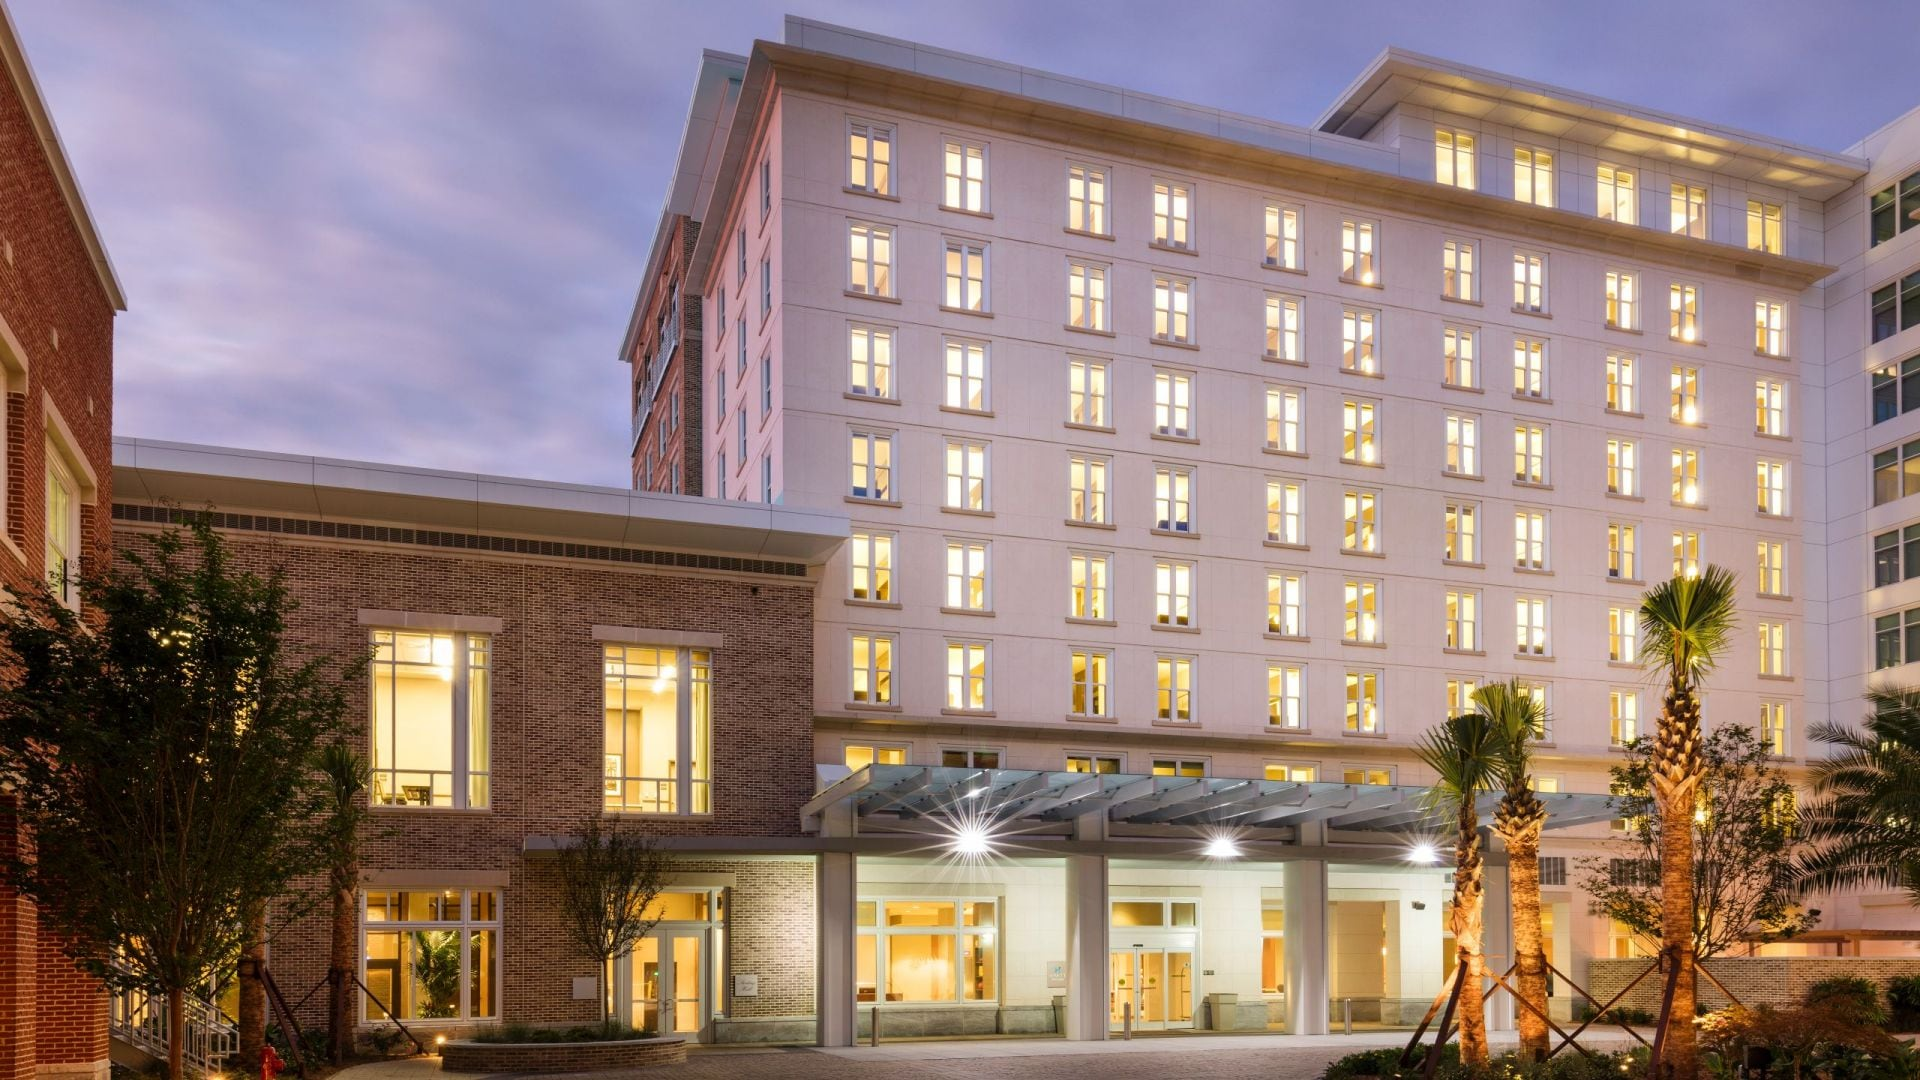 Best Price Guaranteed at Hyatt House Charleston Historic District additionally Harbour View Inn   Official Hotel Website   Charleston's Only furthermore Holiday Inn Express Charleston Dwtn   Ashley River Hotel by IHG additionally Charleston  SC Hotel   Holiday Inn Charleston Historic Hotel besides Waterfront Hotel in Charleston  SC   Charleston Waterfront Hotel as well Charleston Hotels   Hyatt Place Charleston Historic District further Map of downtown Charleston additionally Charleston SC Area Map moreover fort Inn Downtown Charleston SC near MUSC additionally FREE Map of the Historic Charleston Market  Charleston City Market additionally 16 Top Rated Tourist Attractions in Charleston  SC   Pla Ware also 31 innovative Charleston Historic District Map – bnhspine furthermore  as well La Quinta Inn   Suites Charleston Riverview near Fielding Connector furthermore Mount Pleasant SC Map SC in addition FRANCIS MARION HOTEL  187   ̶2̶4̶5̶    Updated 2018 Prices   Reviews. on map of downtown charleston sc hotels